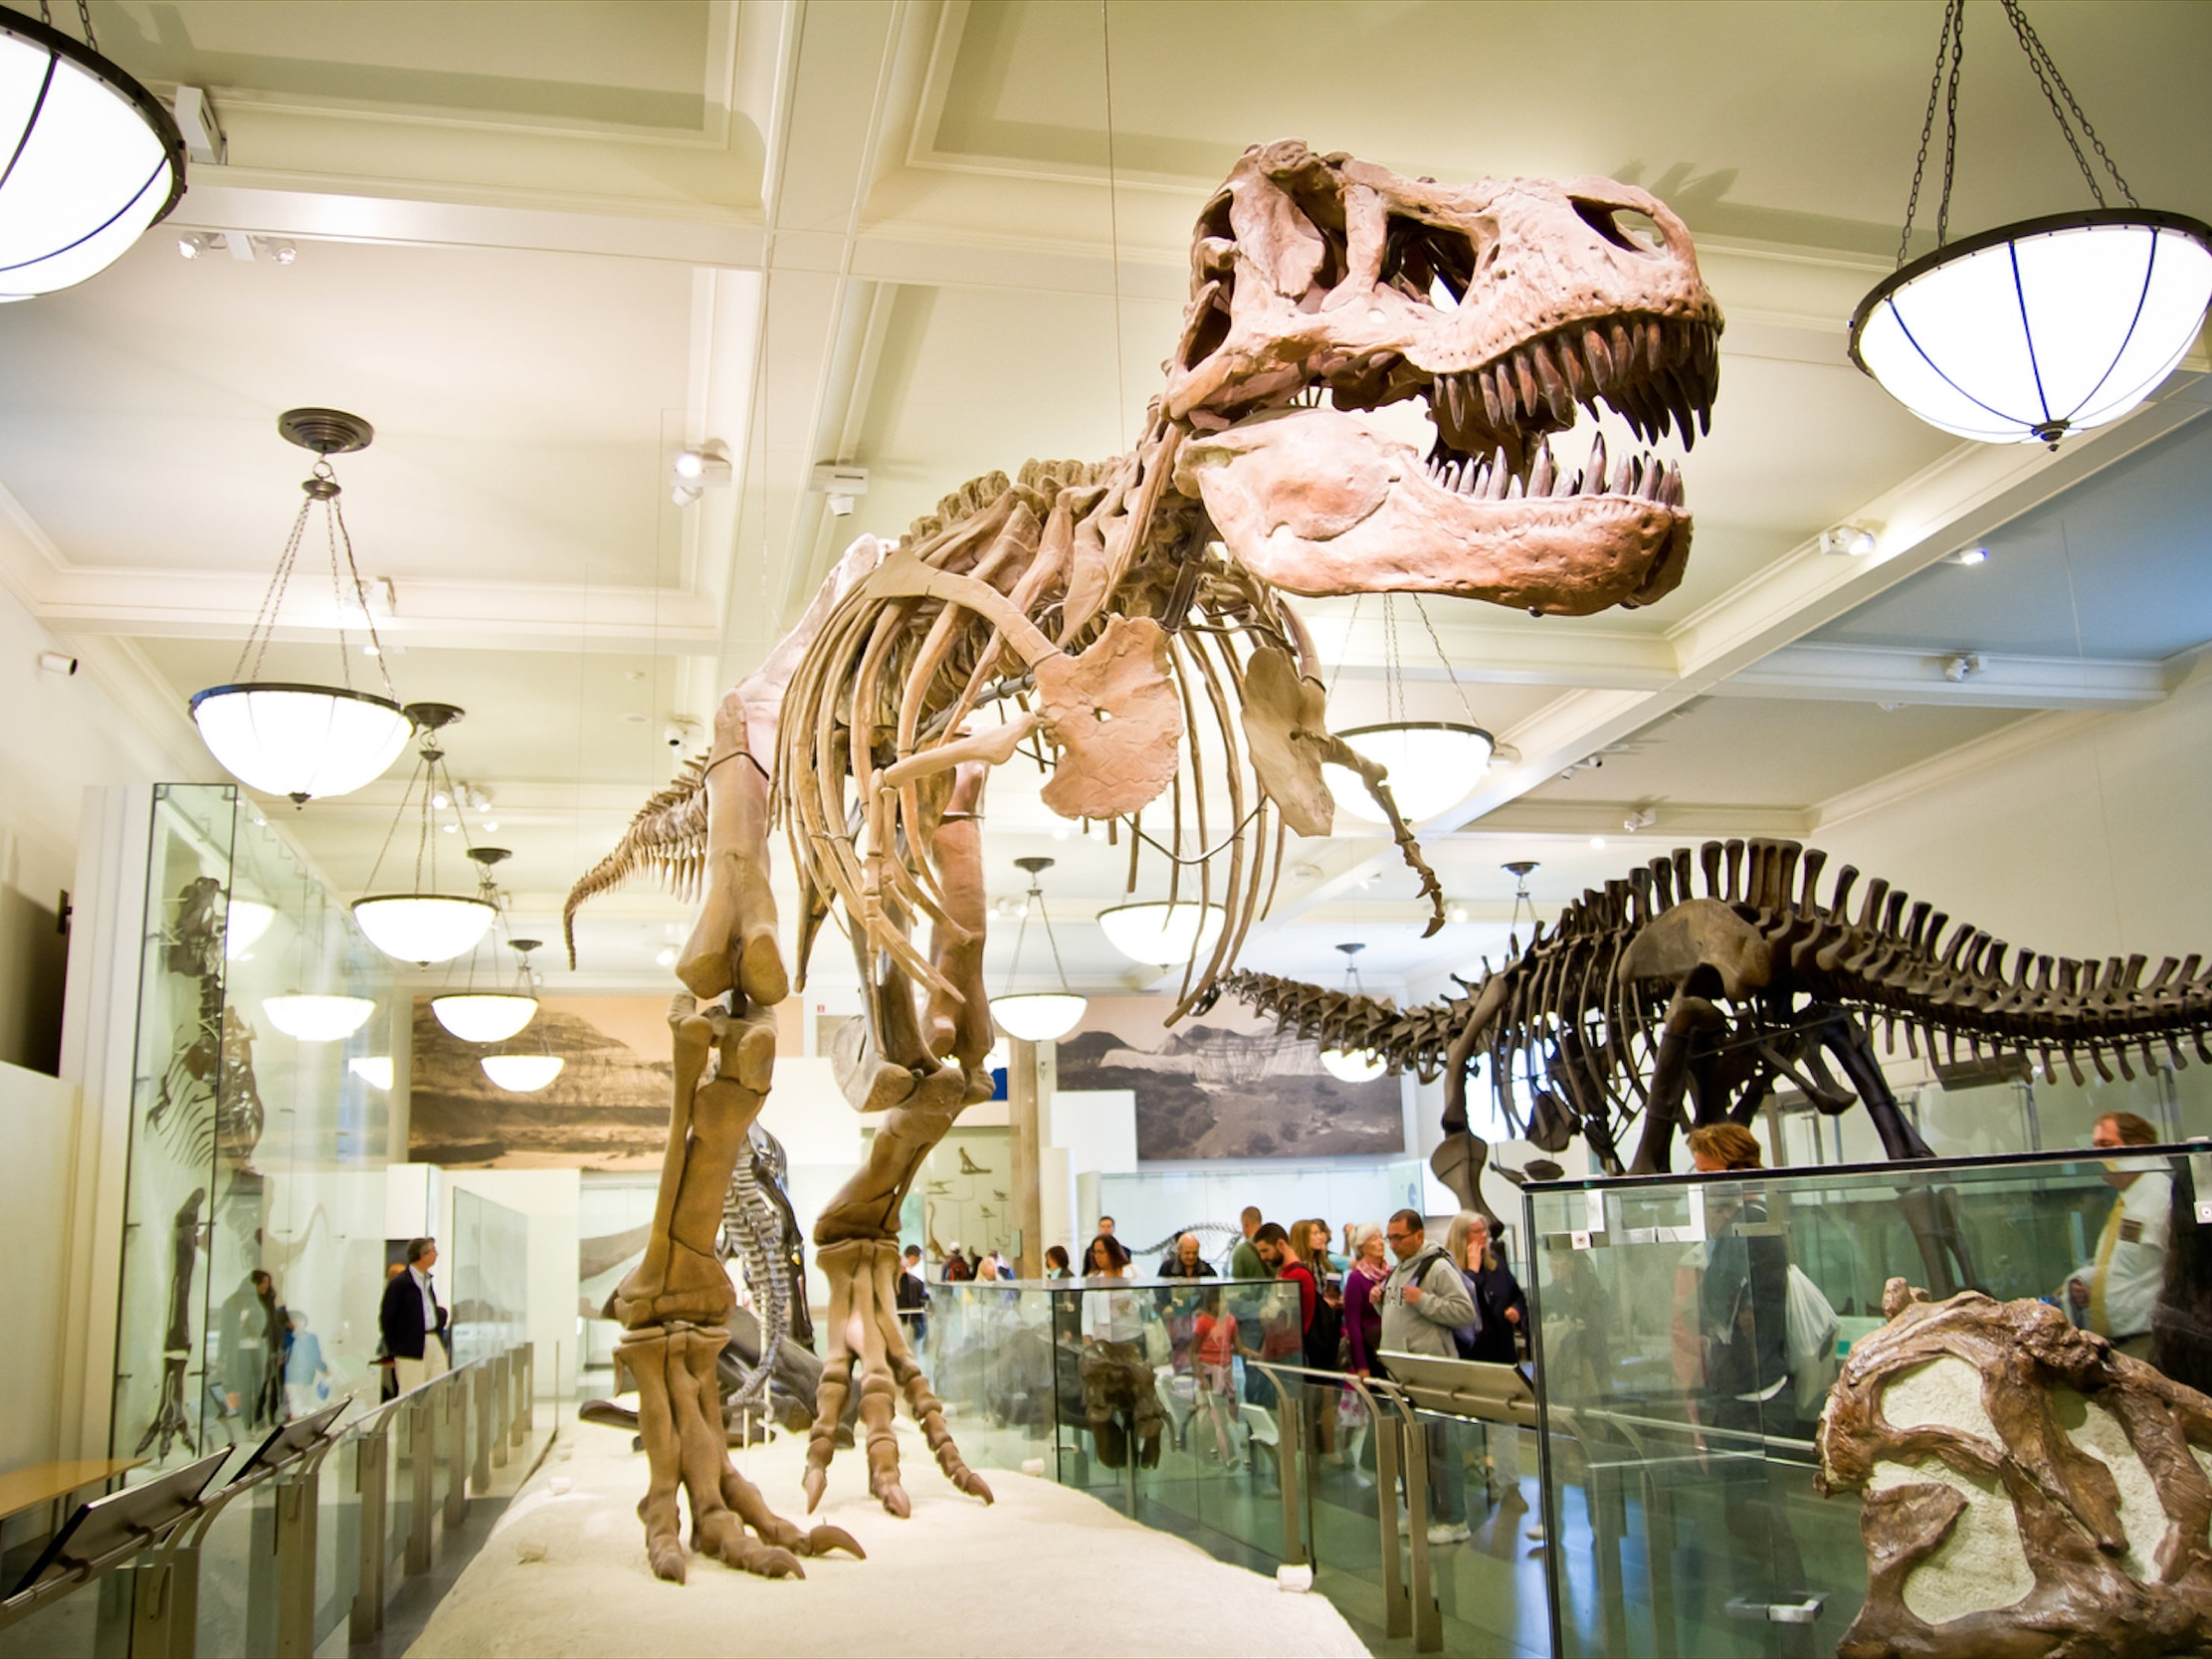 American Museum of Natural History - Central Park West & 79th St, New York, NY 10024